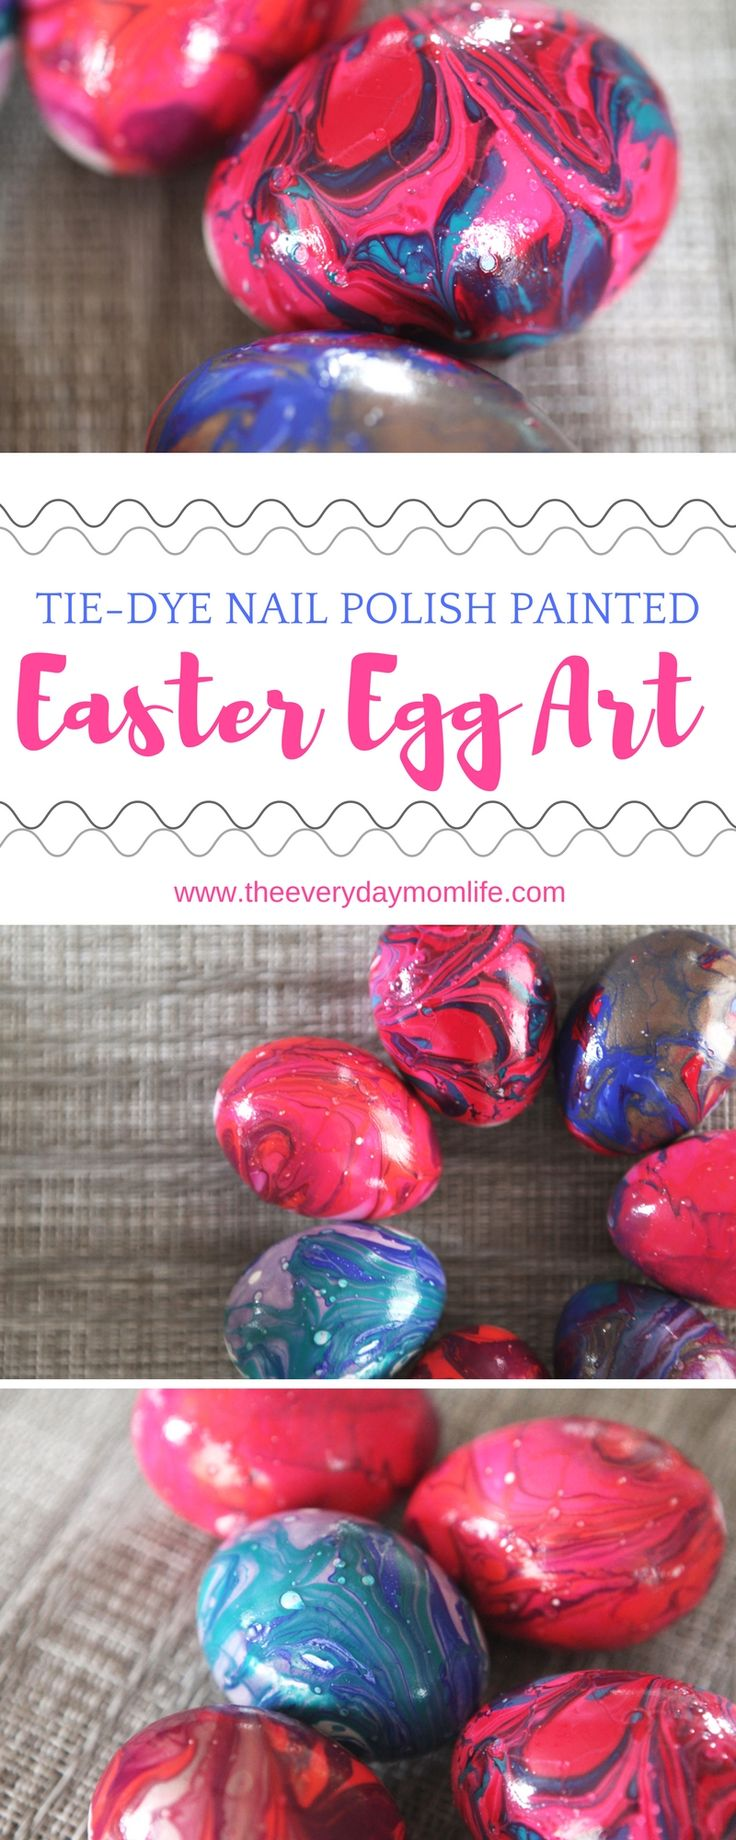 Eggcellent Tie-Dye Nail Polish Easter Eggs The Whole Family Will Love! Do this easy, Easter craft with kids in elementary school, middle school and even high school! This produces stunning results each time!